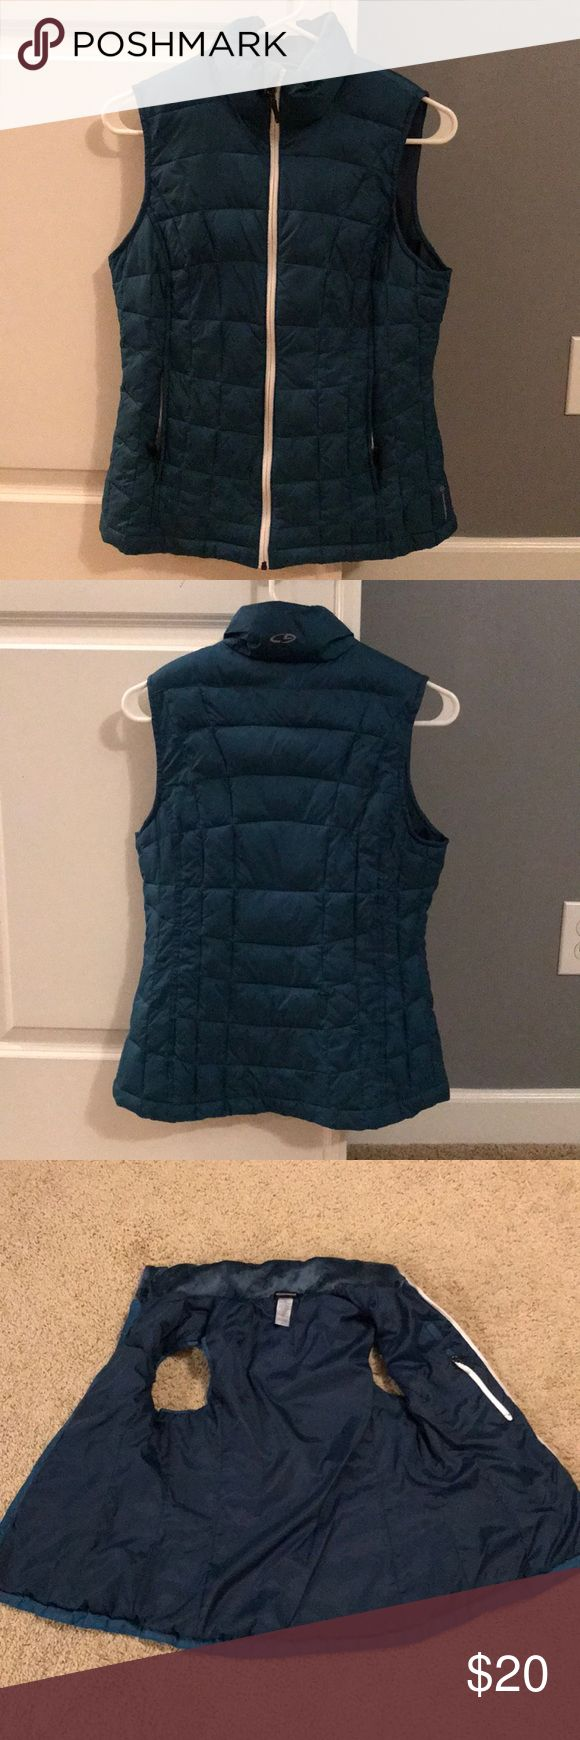 Champion Puffer Athletic Running Down Vest Champion Puffer Athletic Running Down Vest, size small. Dark green color with reflective zipper. Has 2 pockets outside and one inside with a loop near collar to hold earbud wires. Color is soft material. Great for running bib cold or lounging. In excellent condition, worn twice. Champion Jackets & Coats Vests